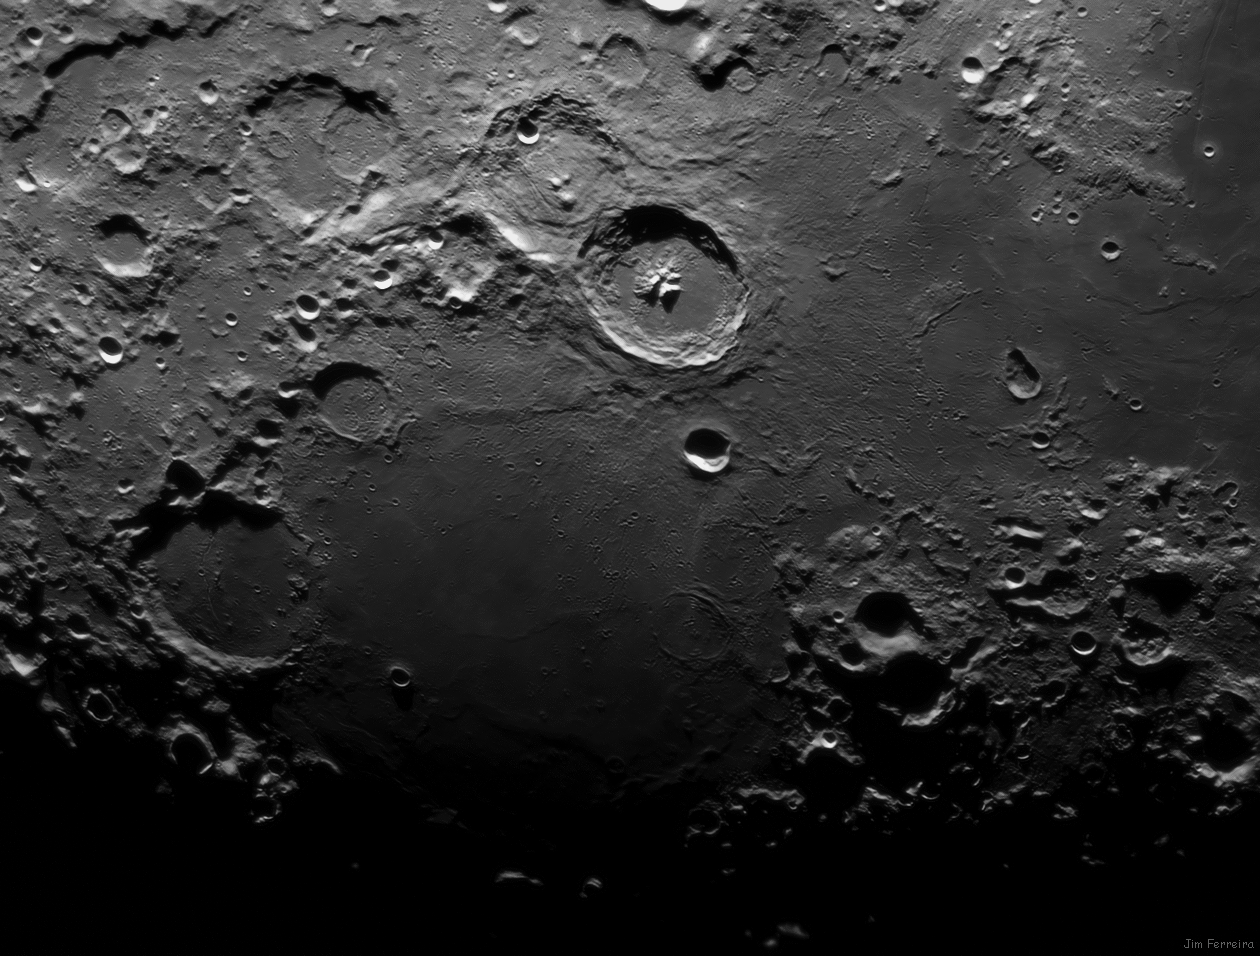 Mare Nectaris / Mare Tranquility, 19 day old moon.